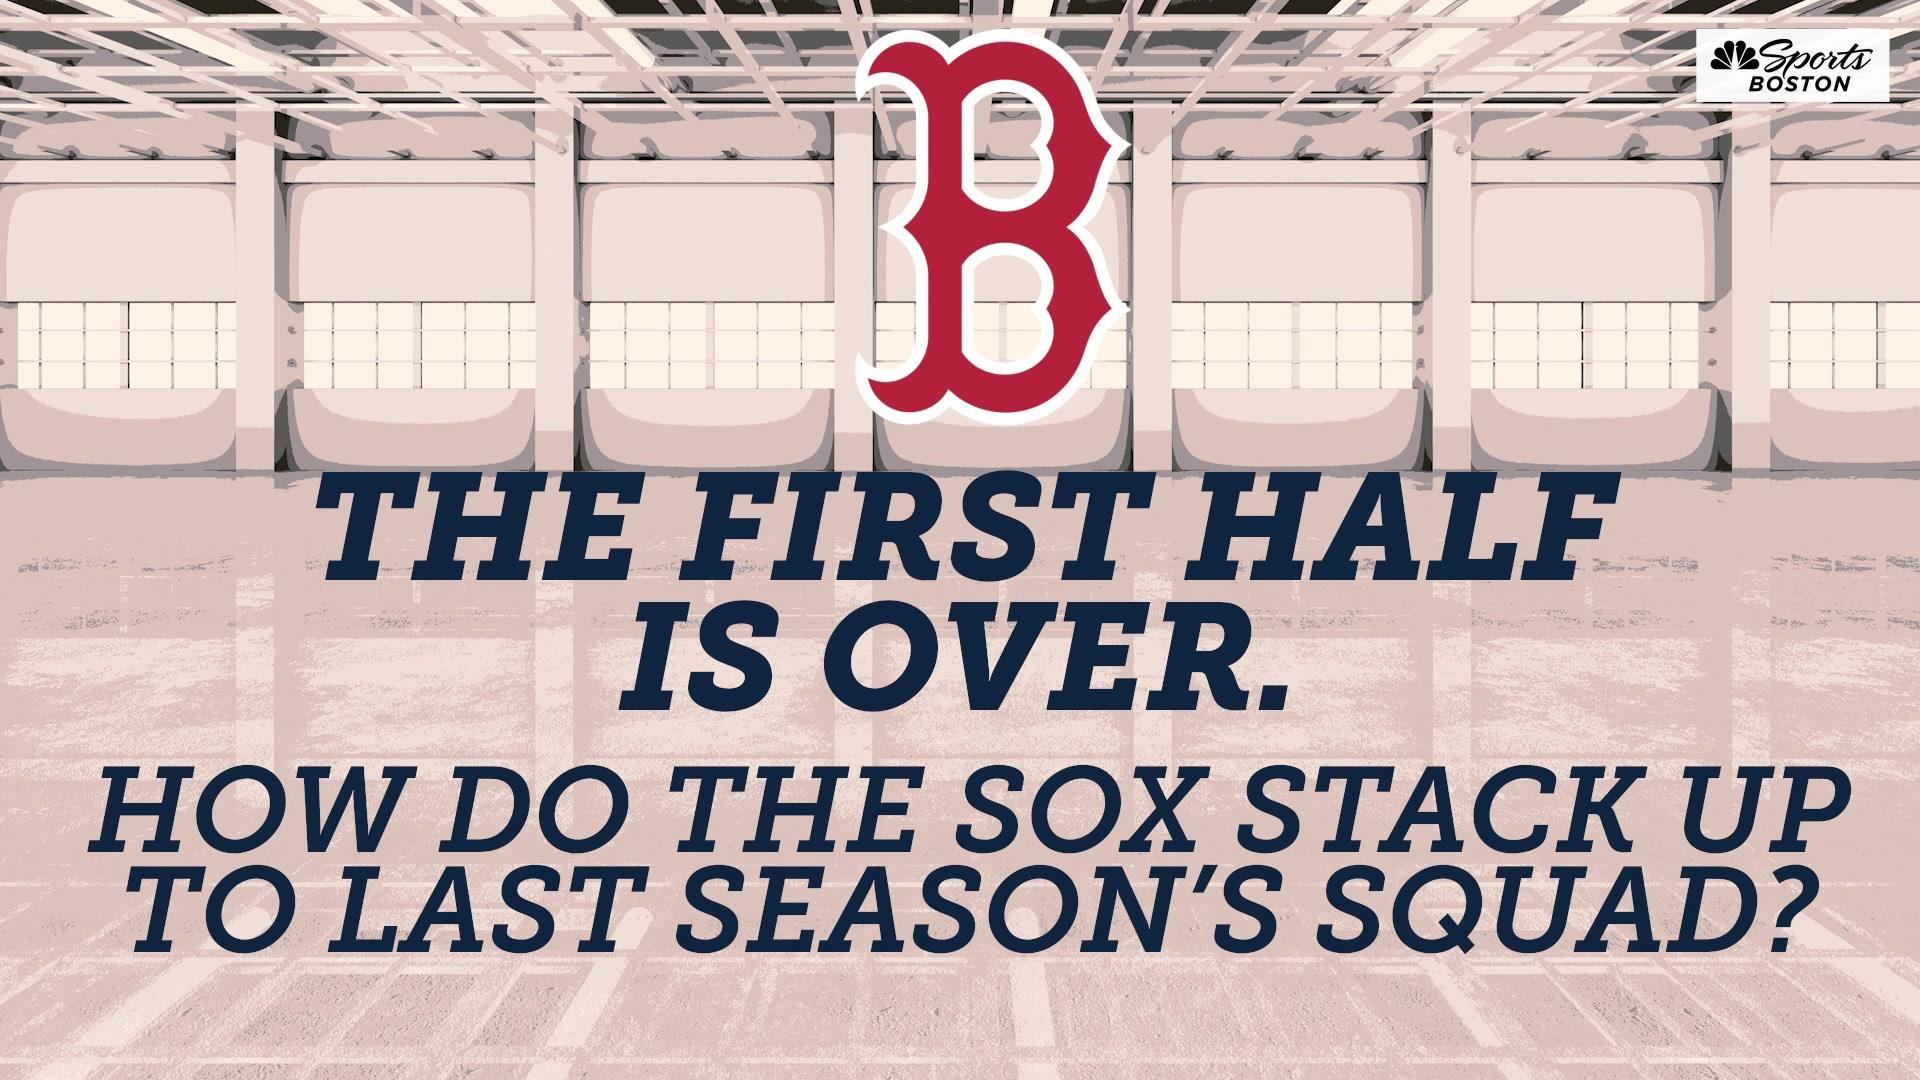 How do the Red Sox compare to last season's team after 81 games?